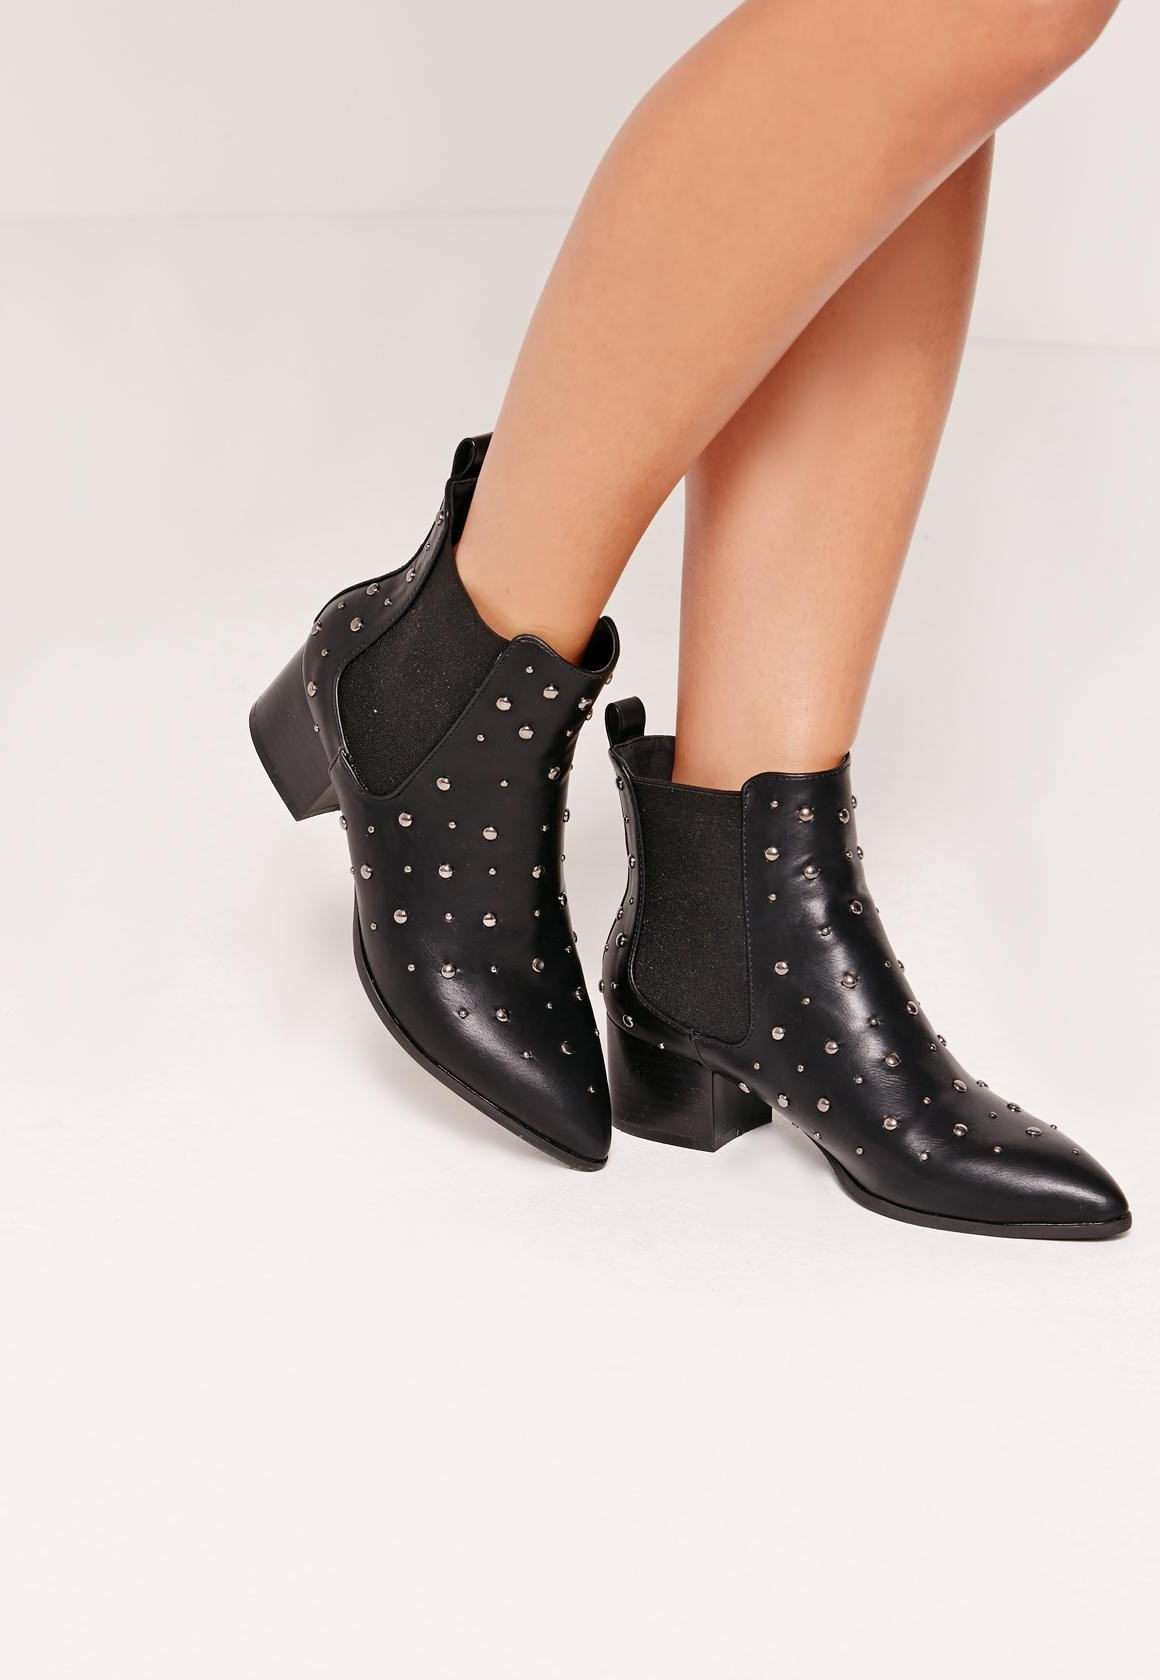 Missguided $72